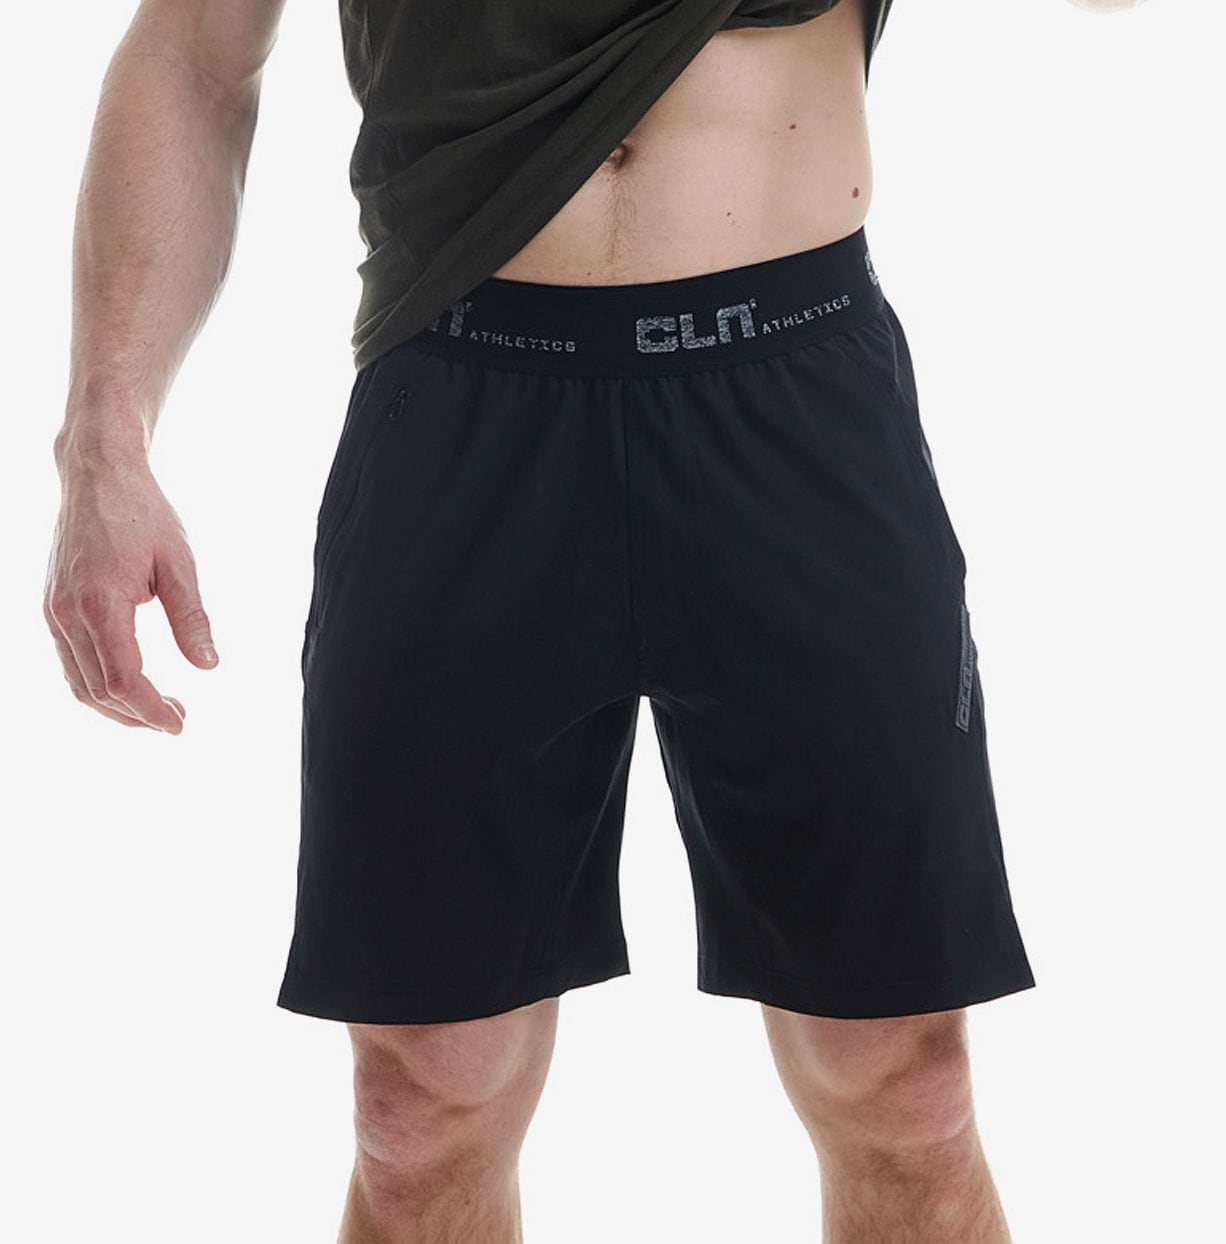 CLN-Injection-Shorts-Black-6